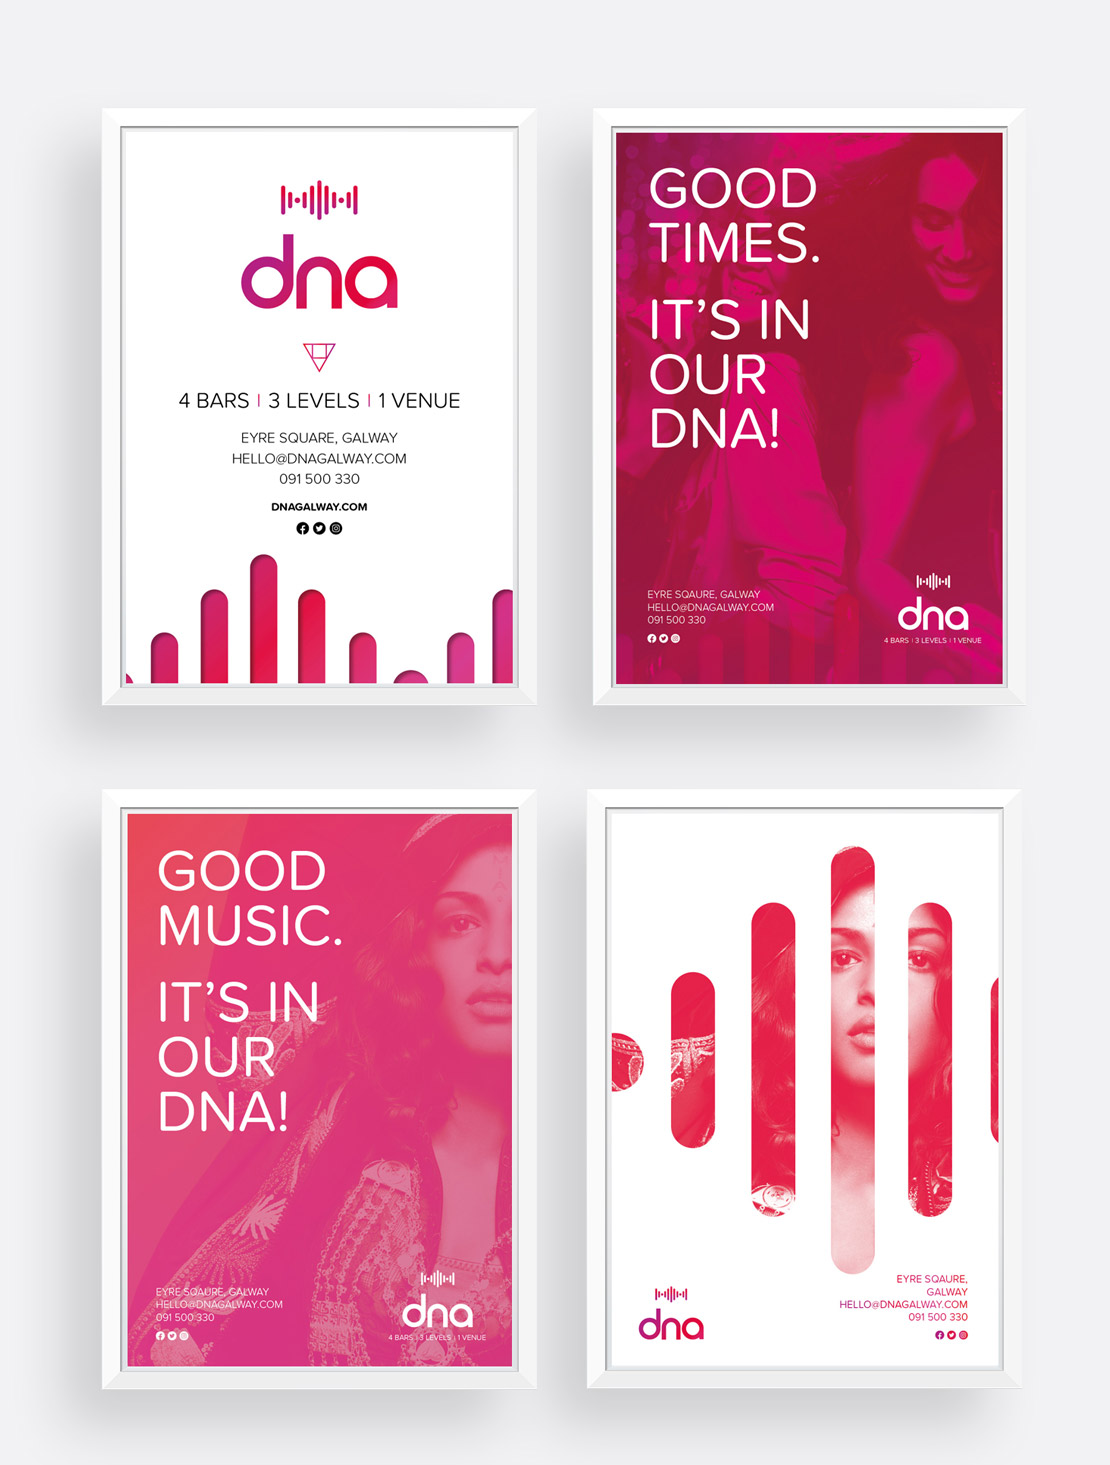 dna A2 promotional posters